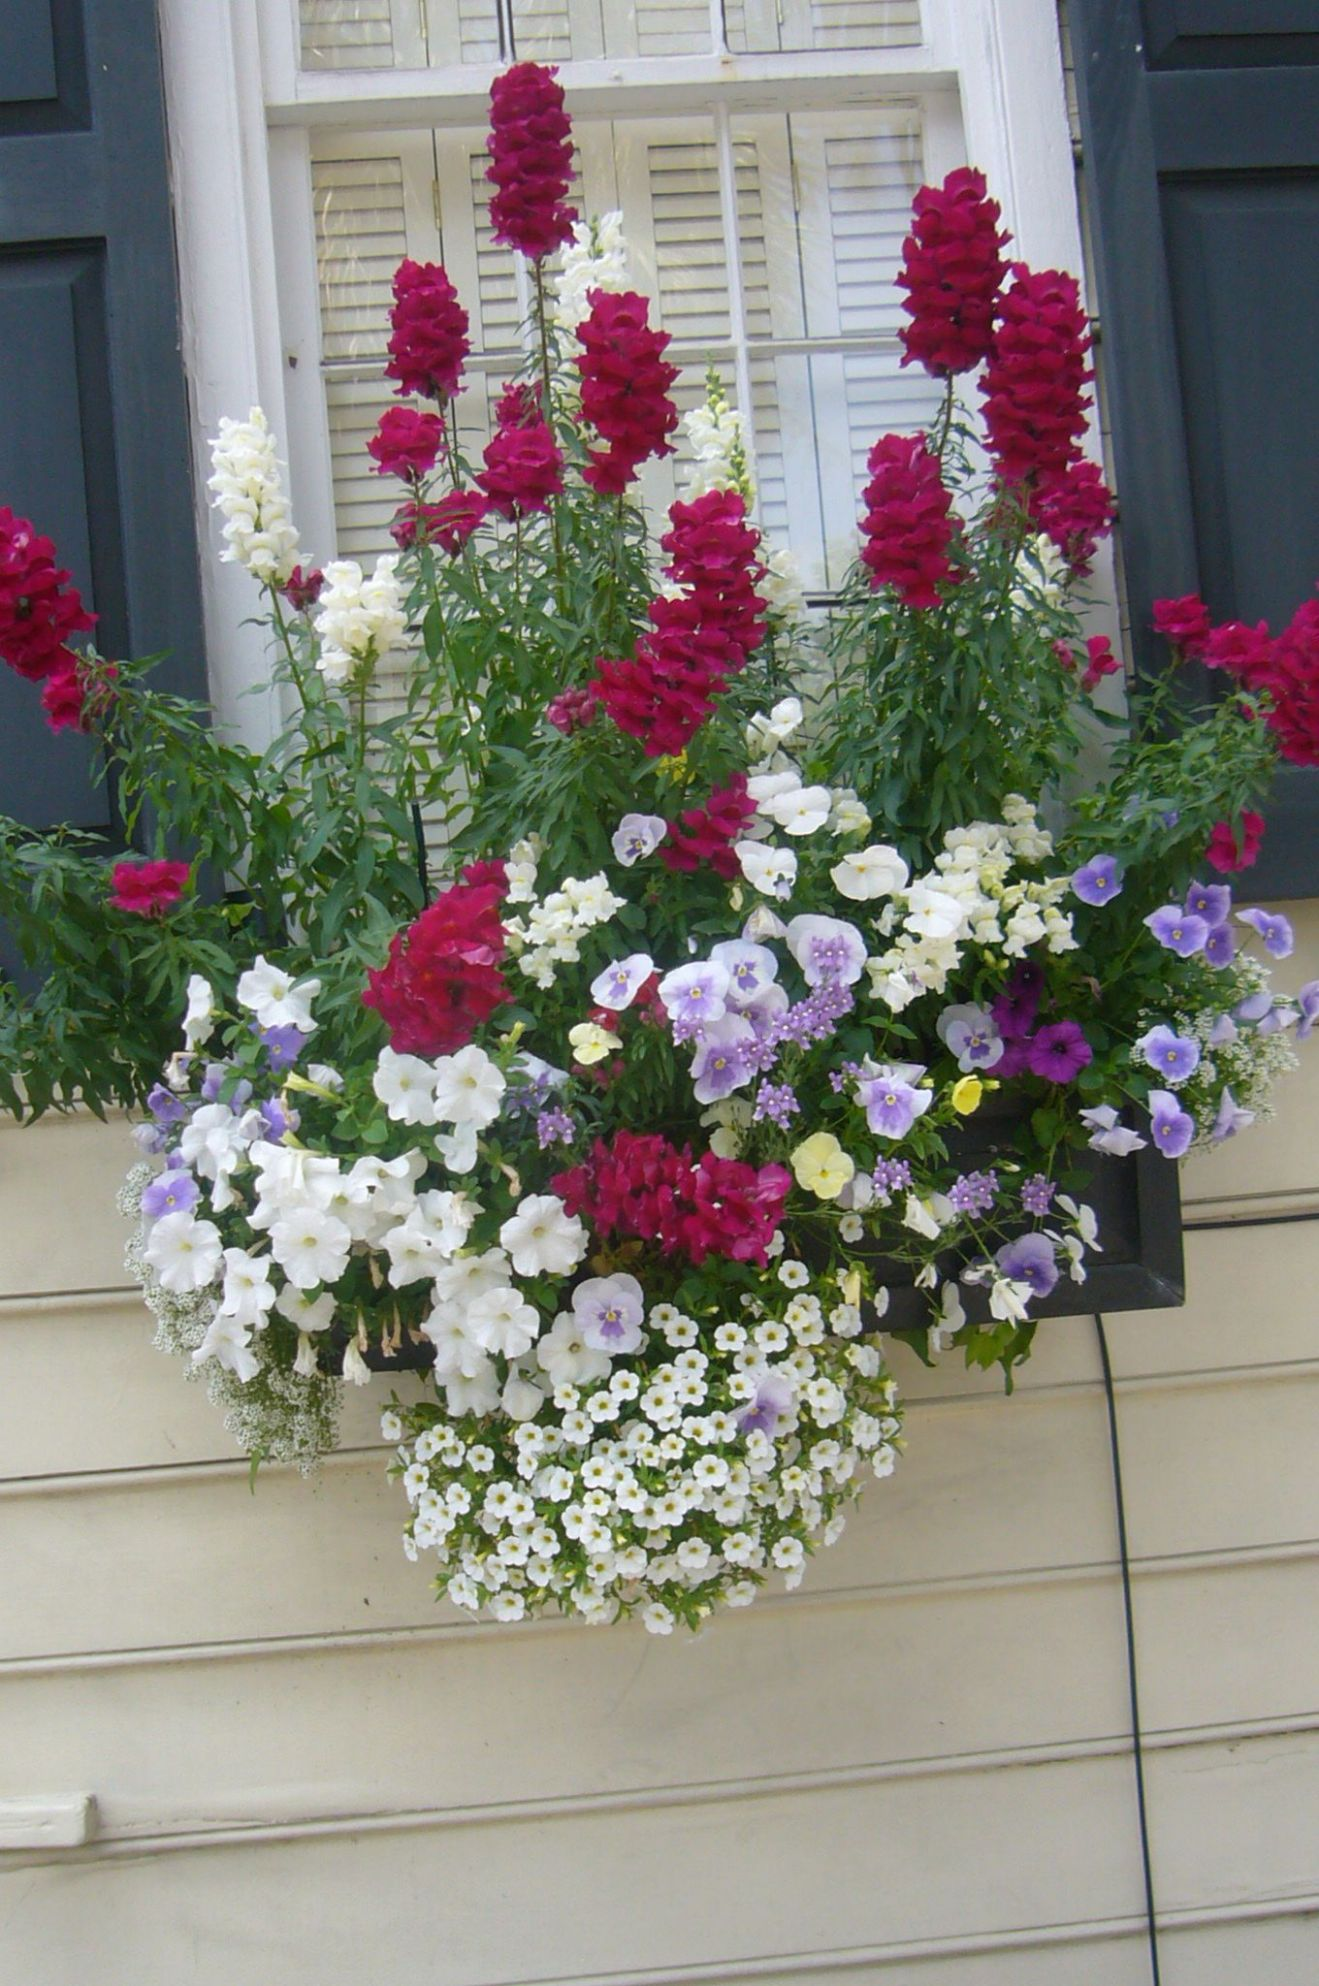 Summer Window Box Ideas (With images) | Window box flowers, Window ..